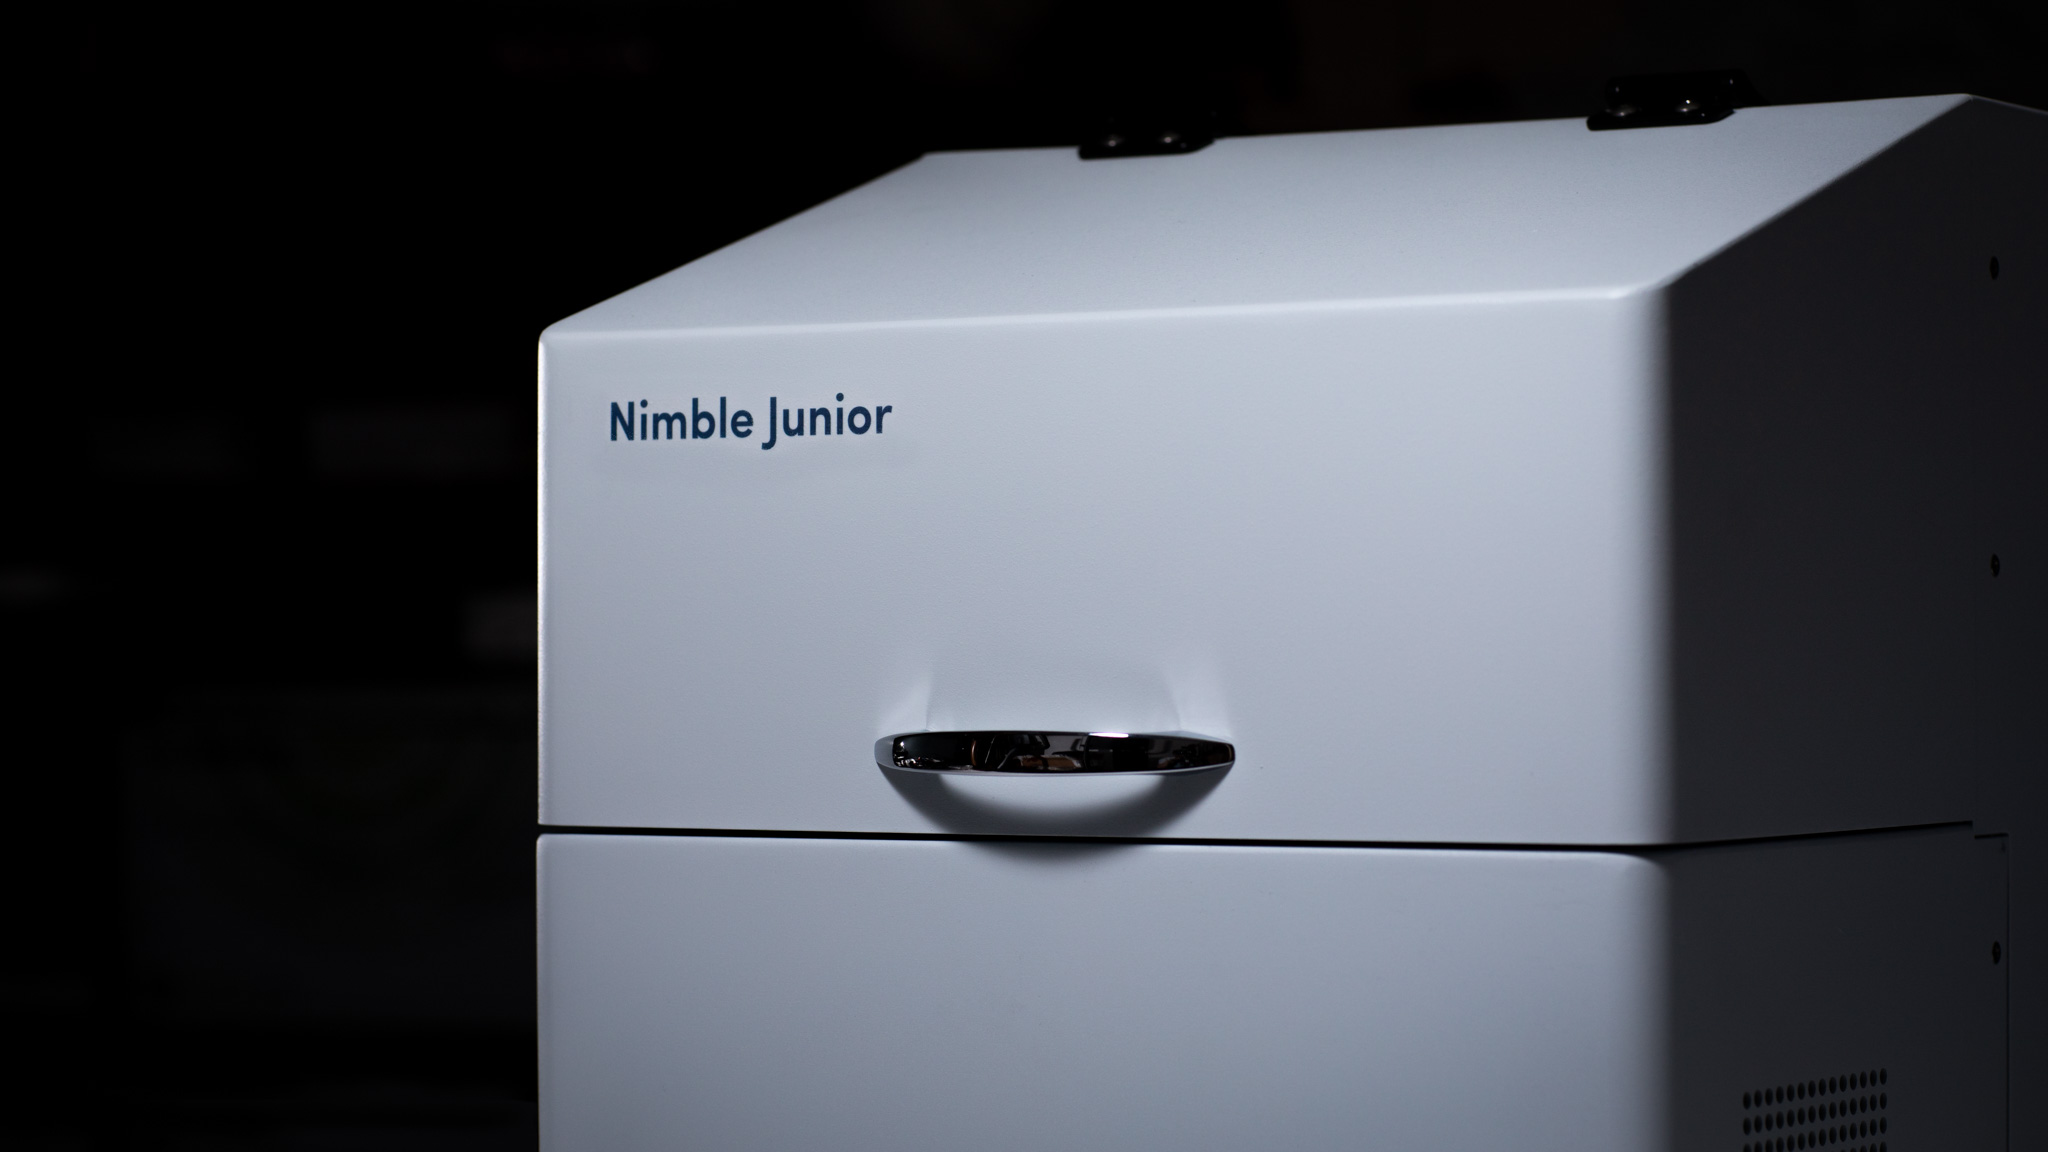 Nimble Junior - A high throughput system for evaluation of protein solubility